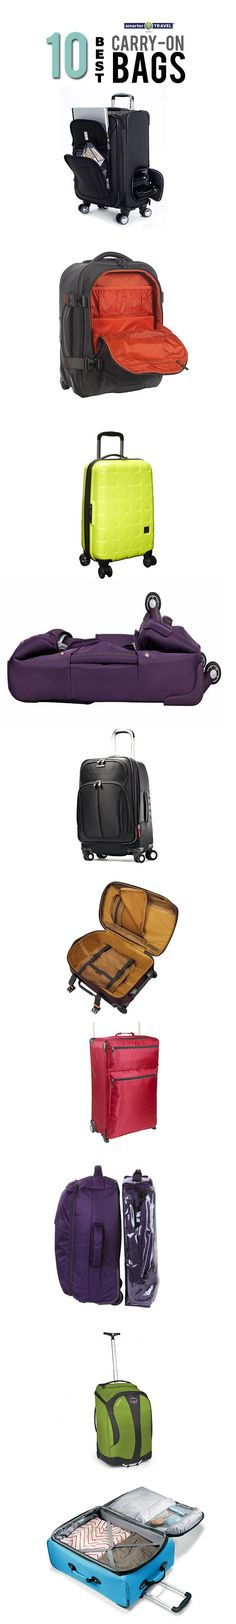 10 best carry-on bags for every traveler. Click the infographic to find out which bags made the cut and why. #travel #travelproducts #bags